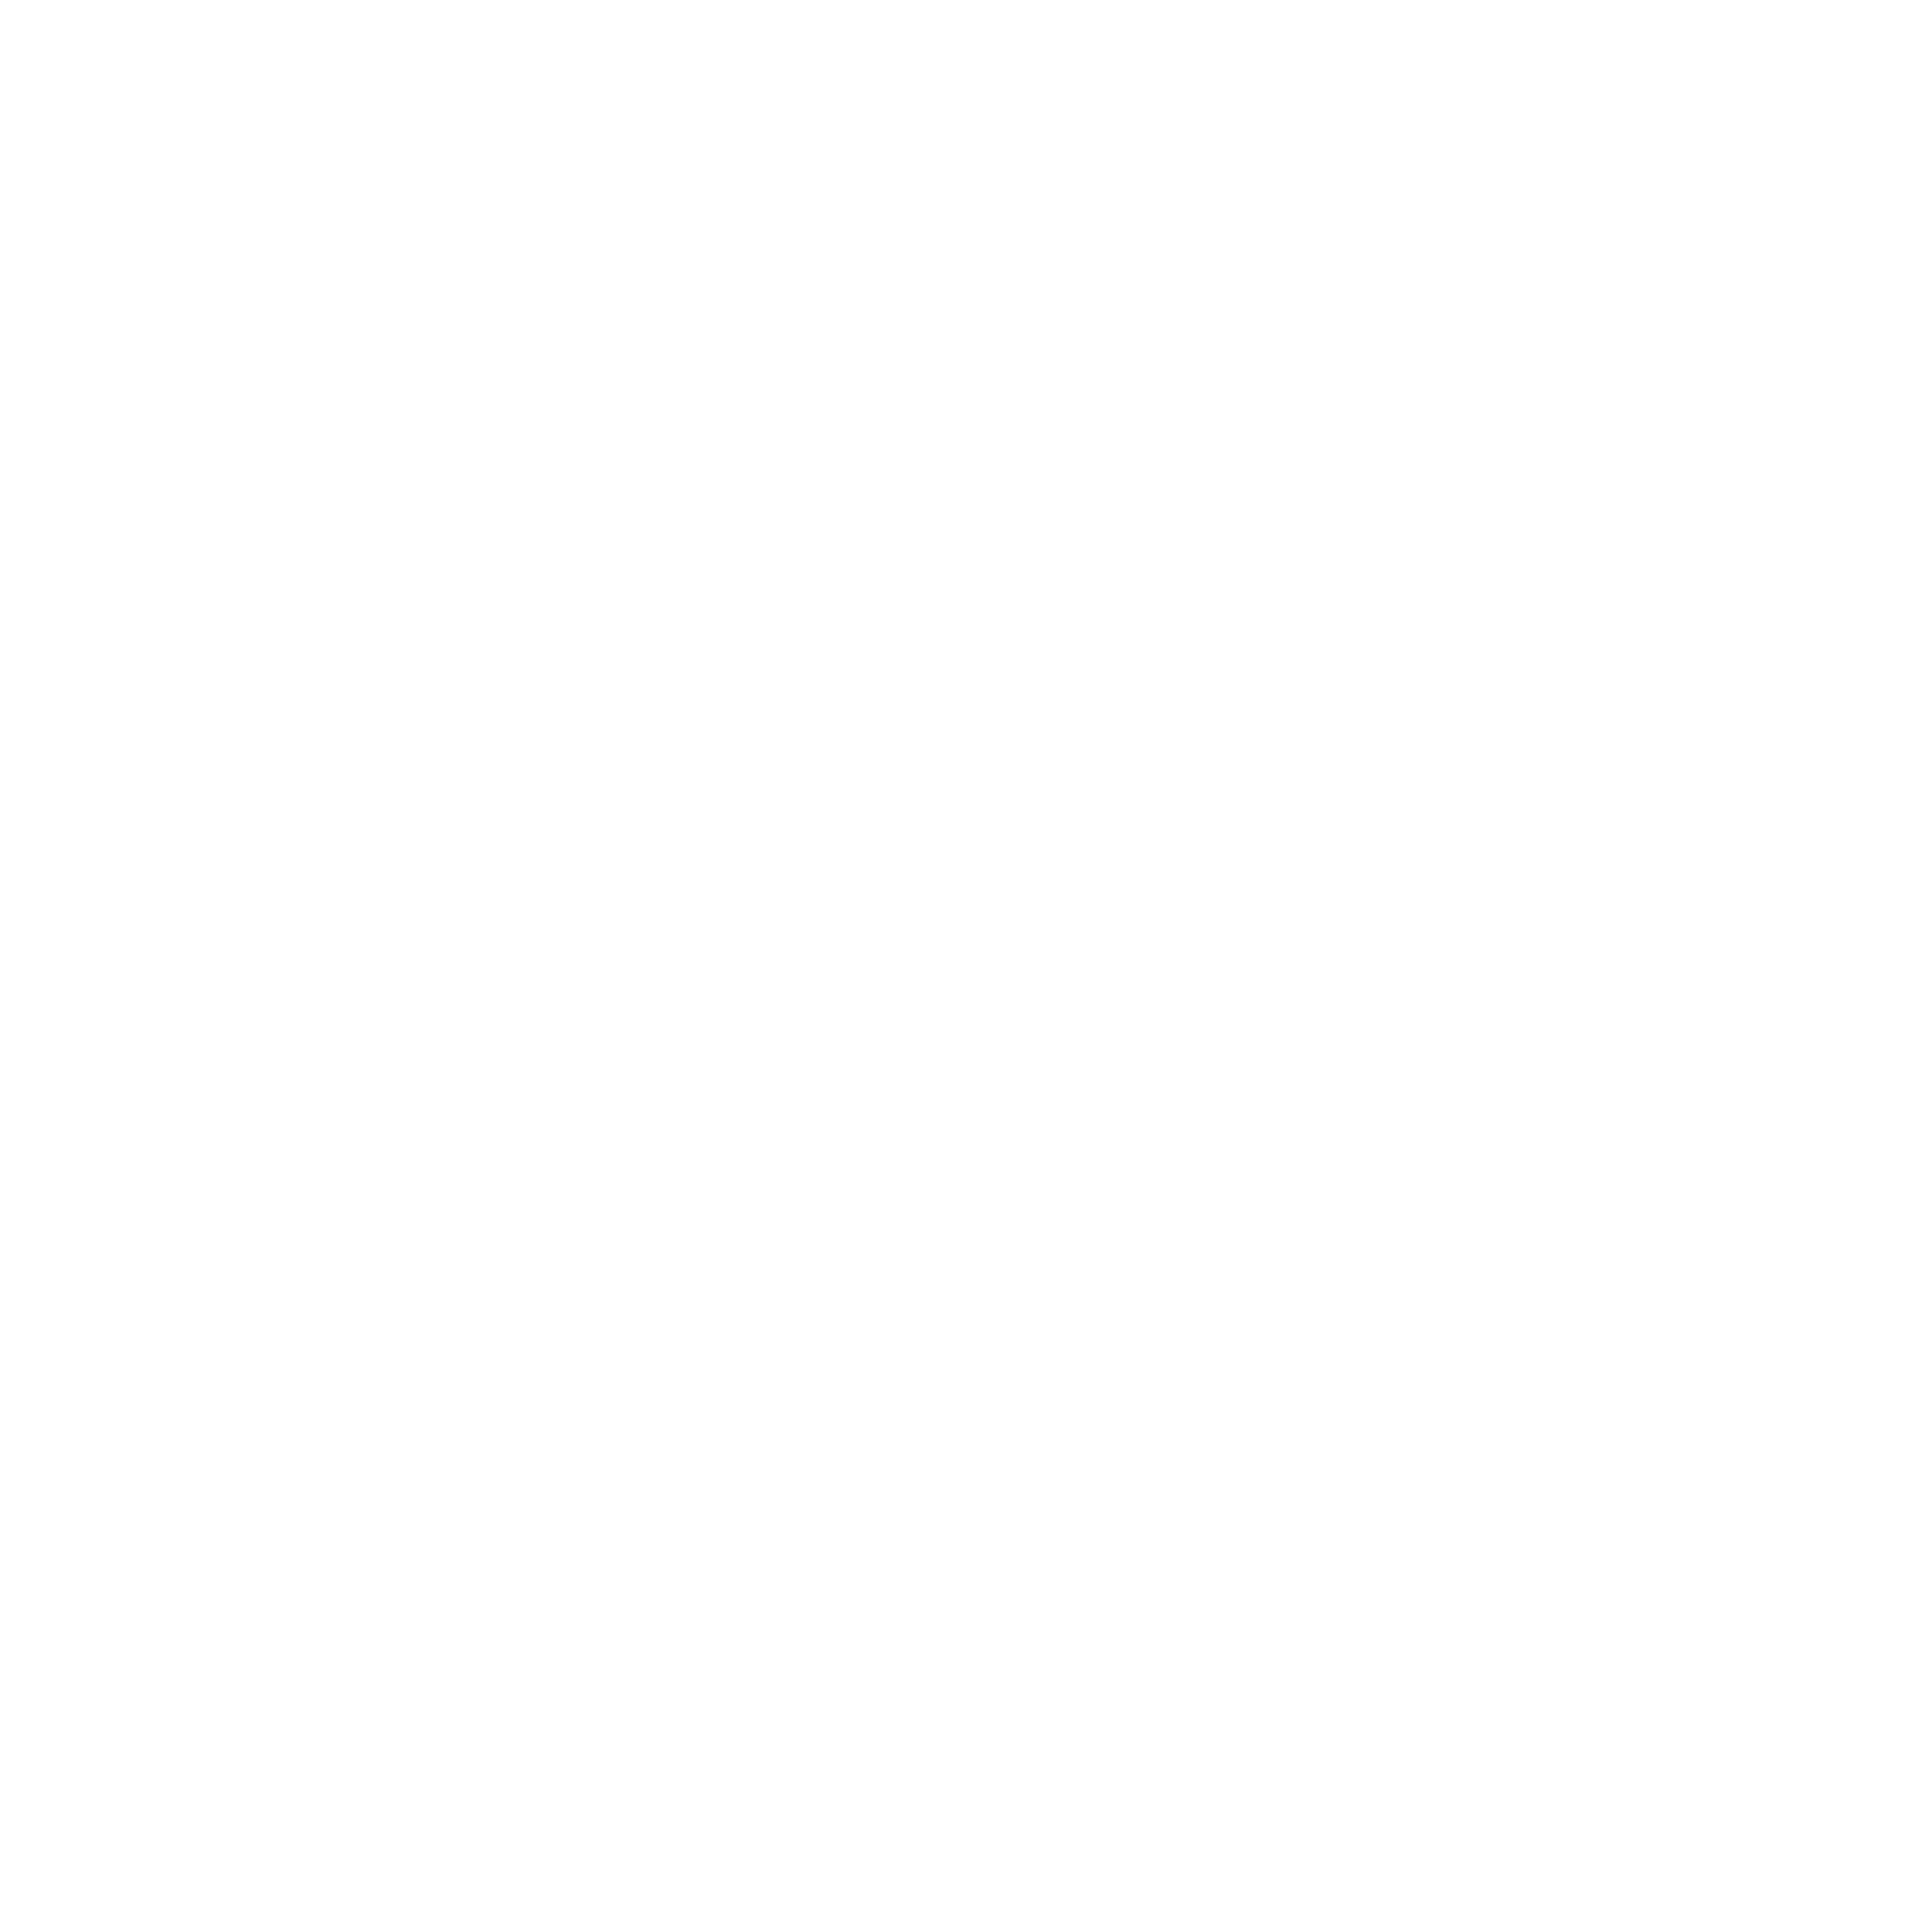 Icon of food items on shelves in a pantry